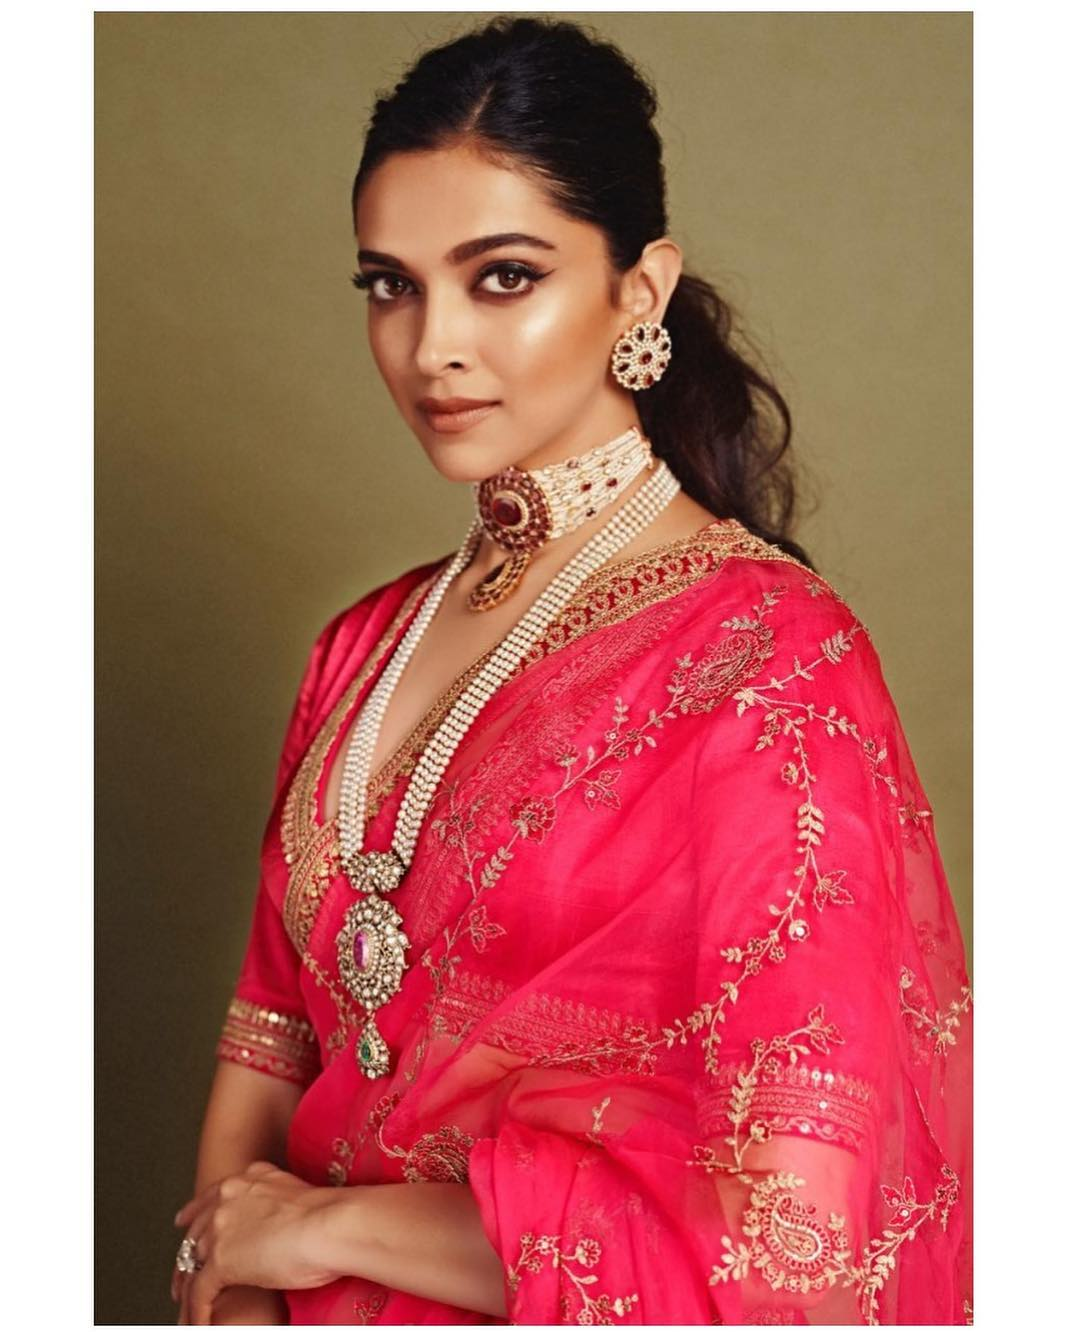 Deepika Padukone in Red, Three Times the Actor Channeled Her Inner Boss Lady